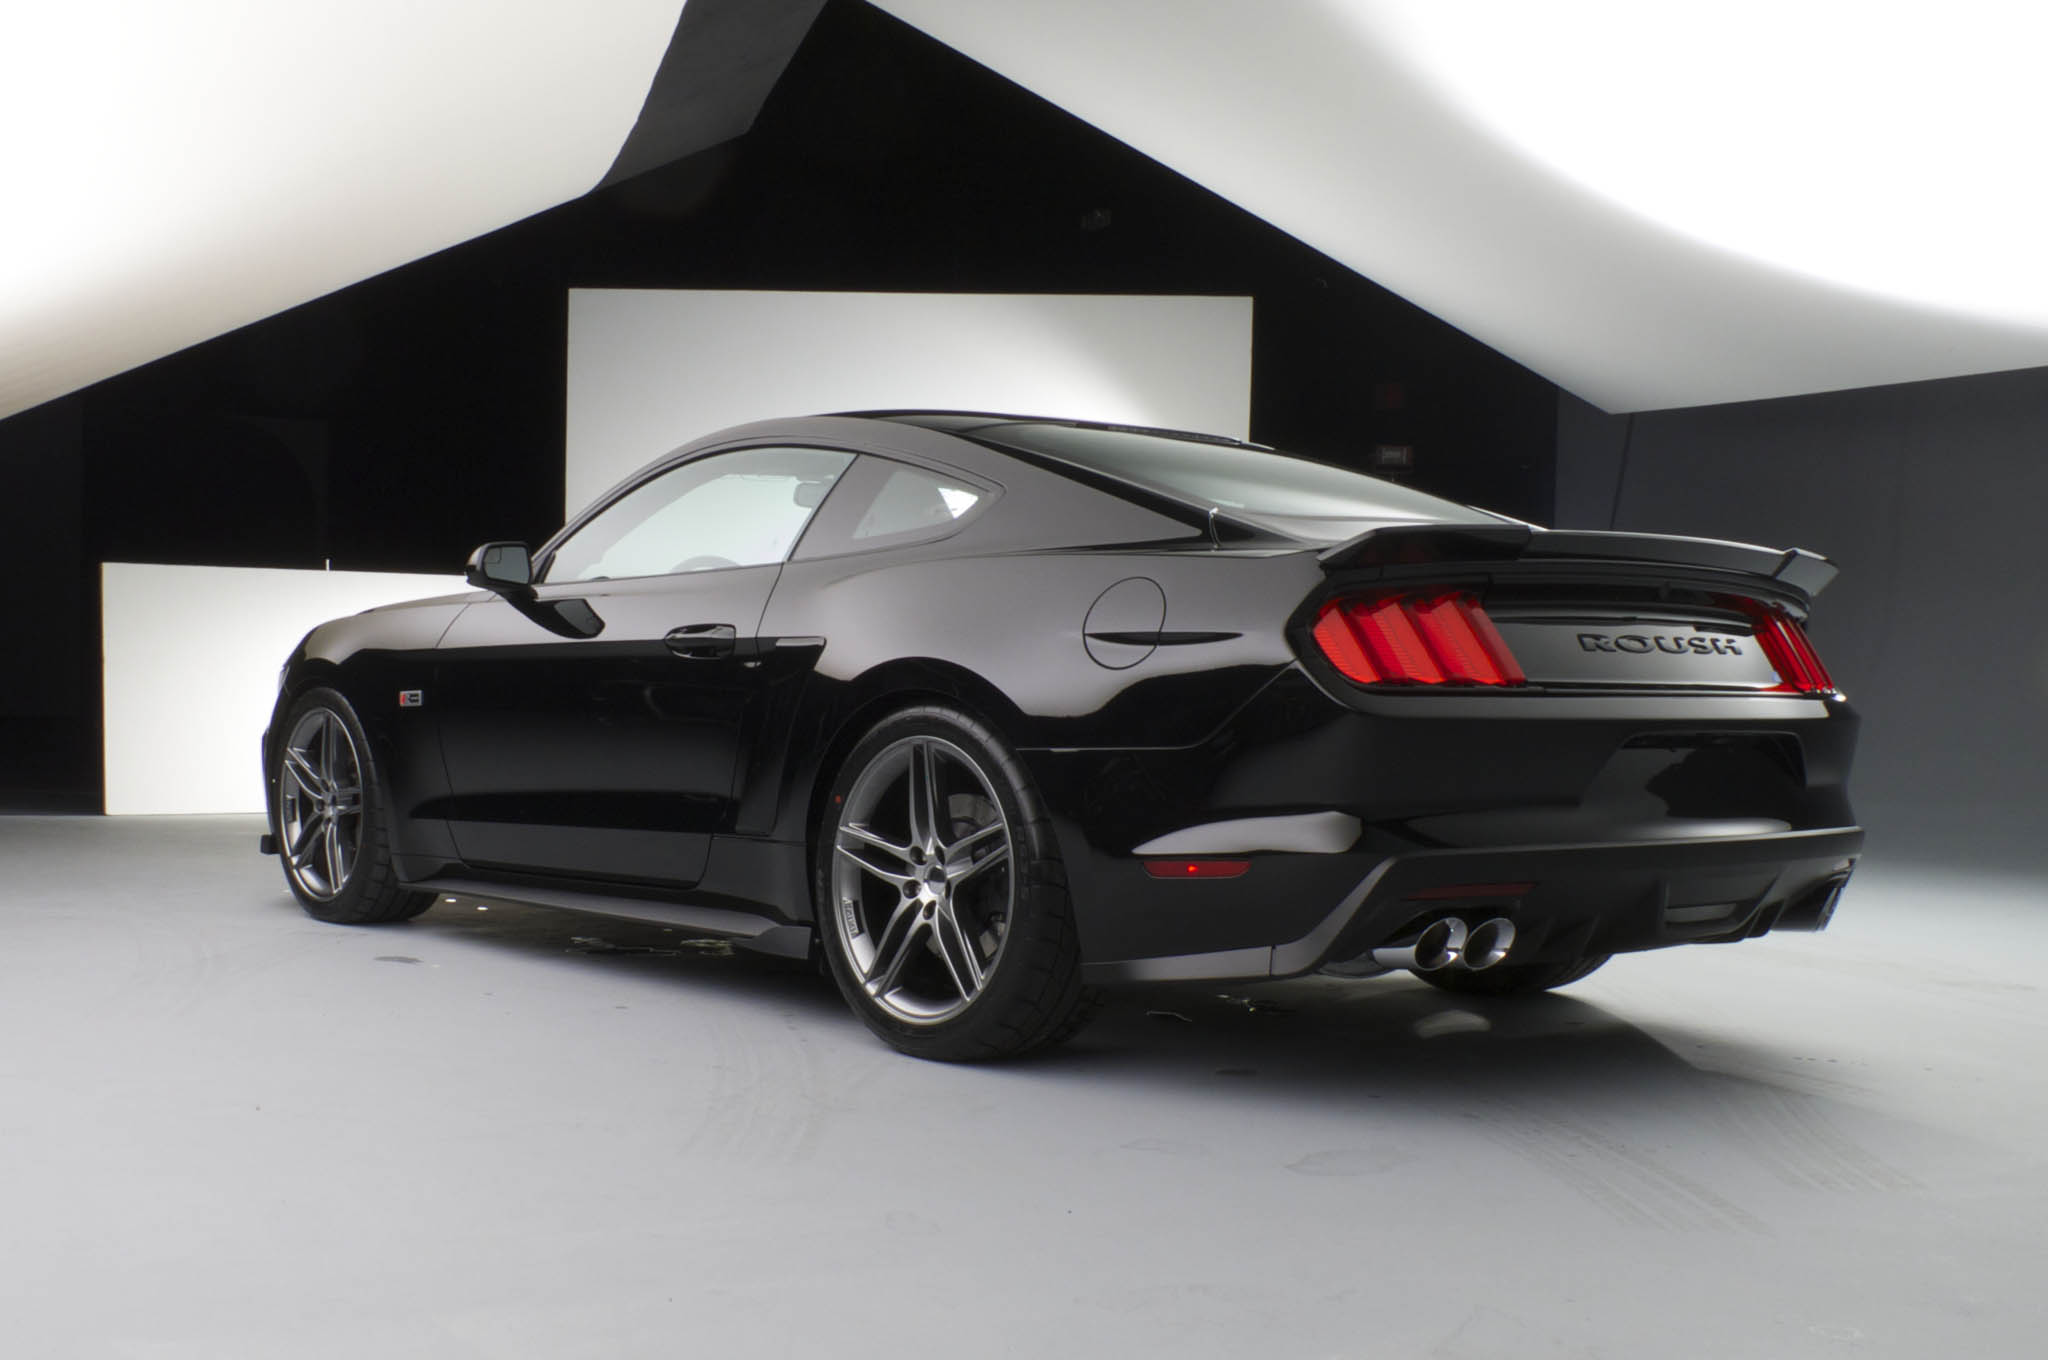 2015 roush stage 3 ford mustang spits out 670 hp